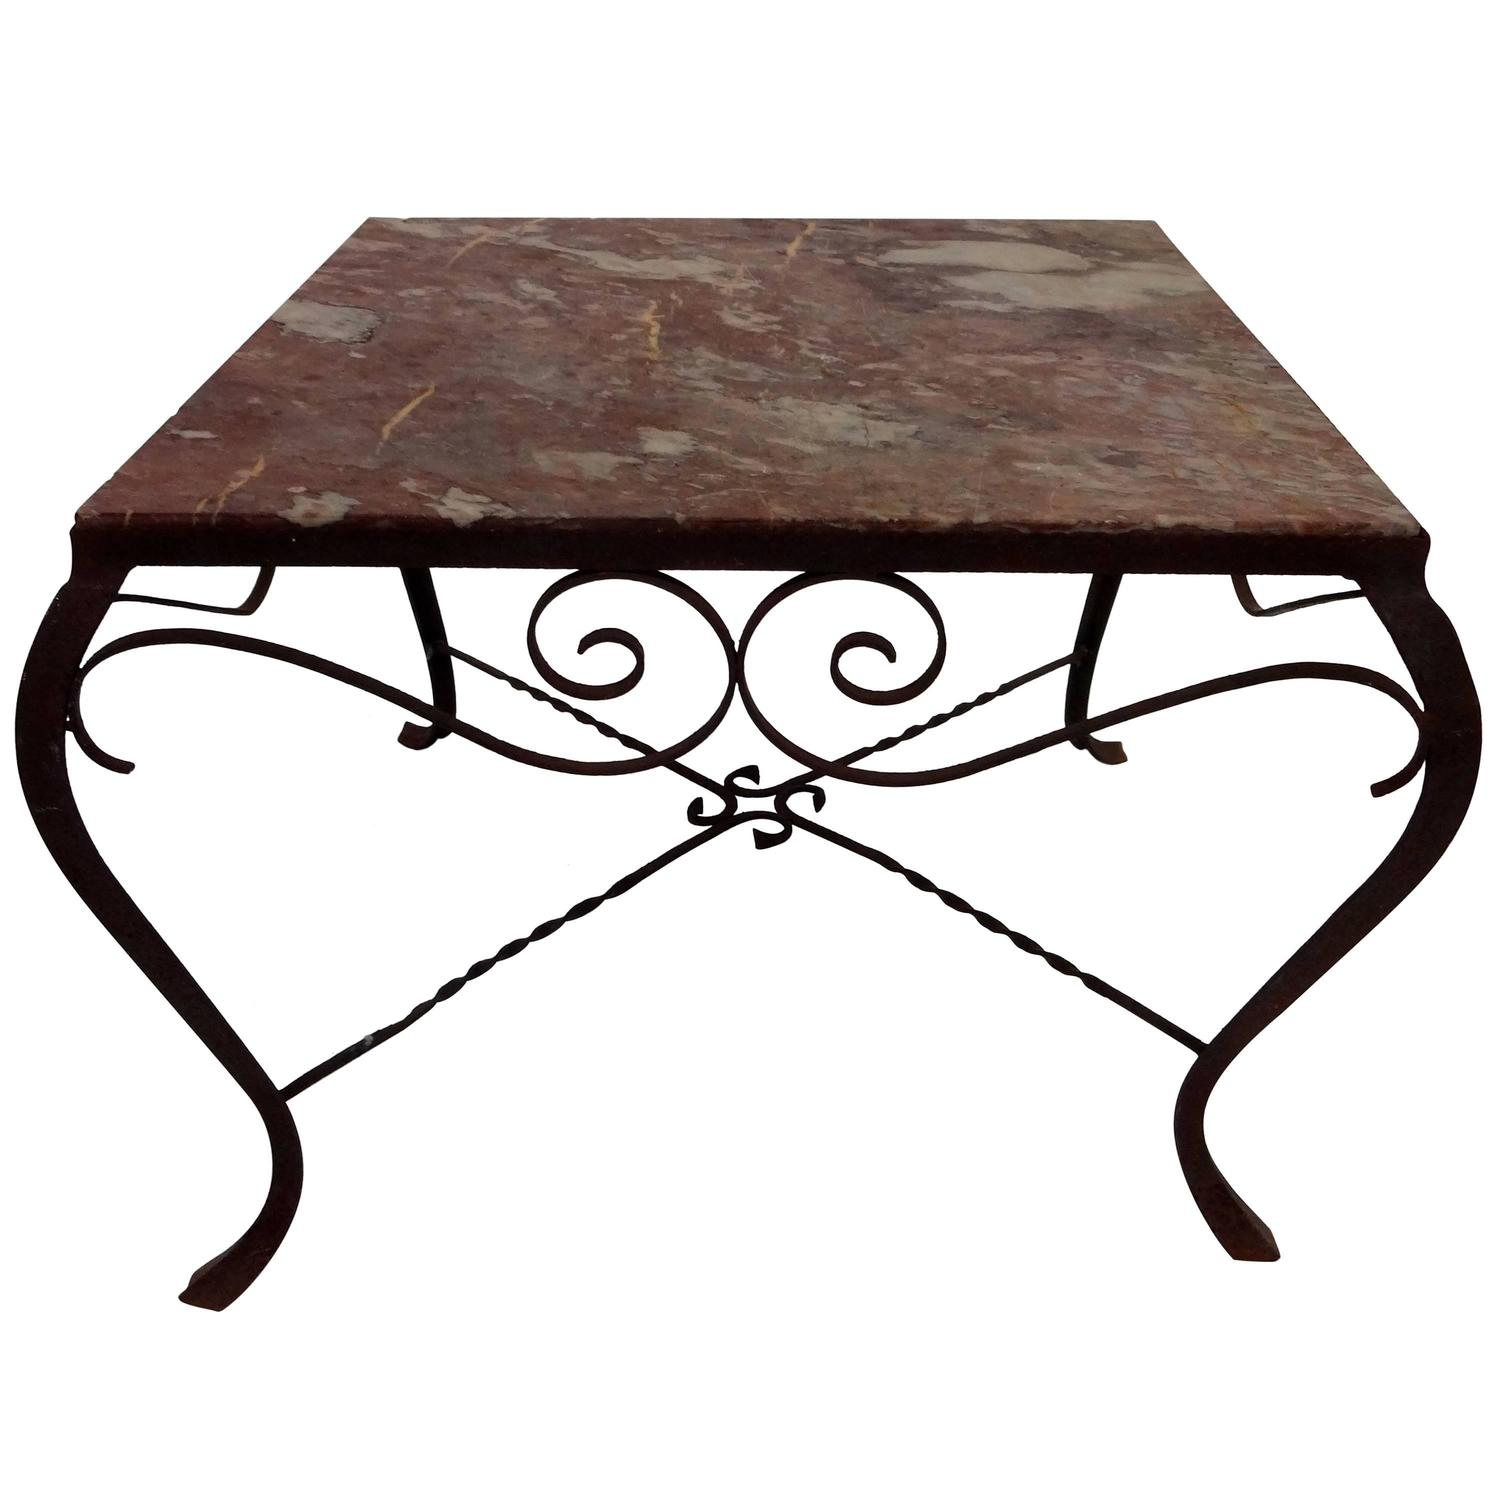 French wrought iron marble top coffee table at 1stdibs for Square wrought iron coffee table